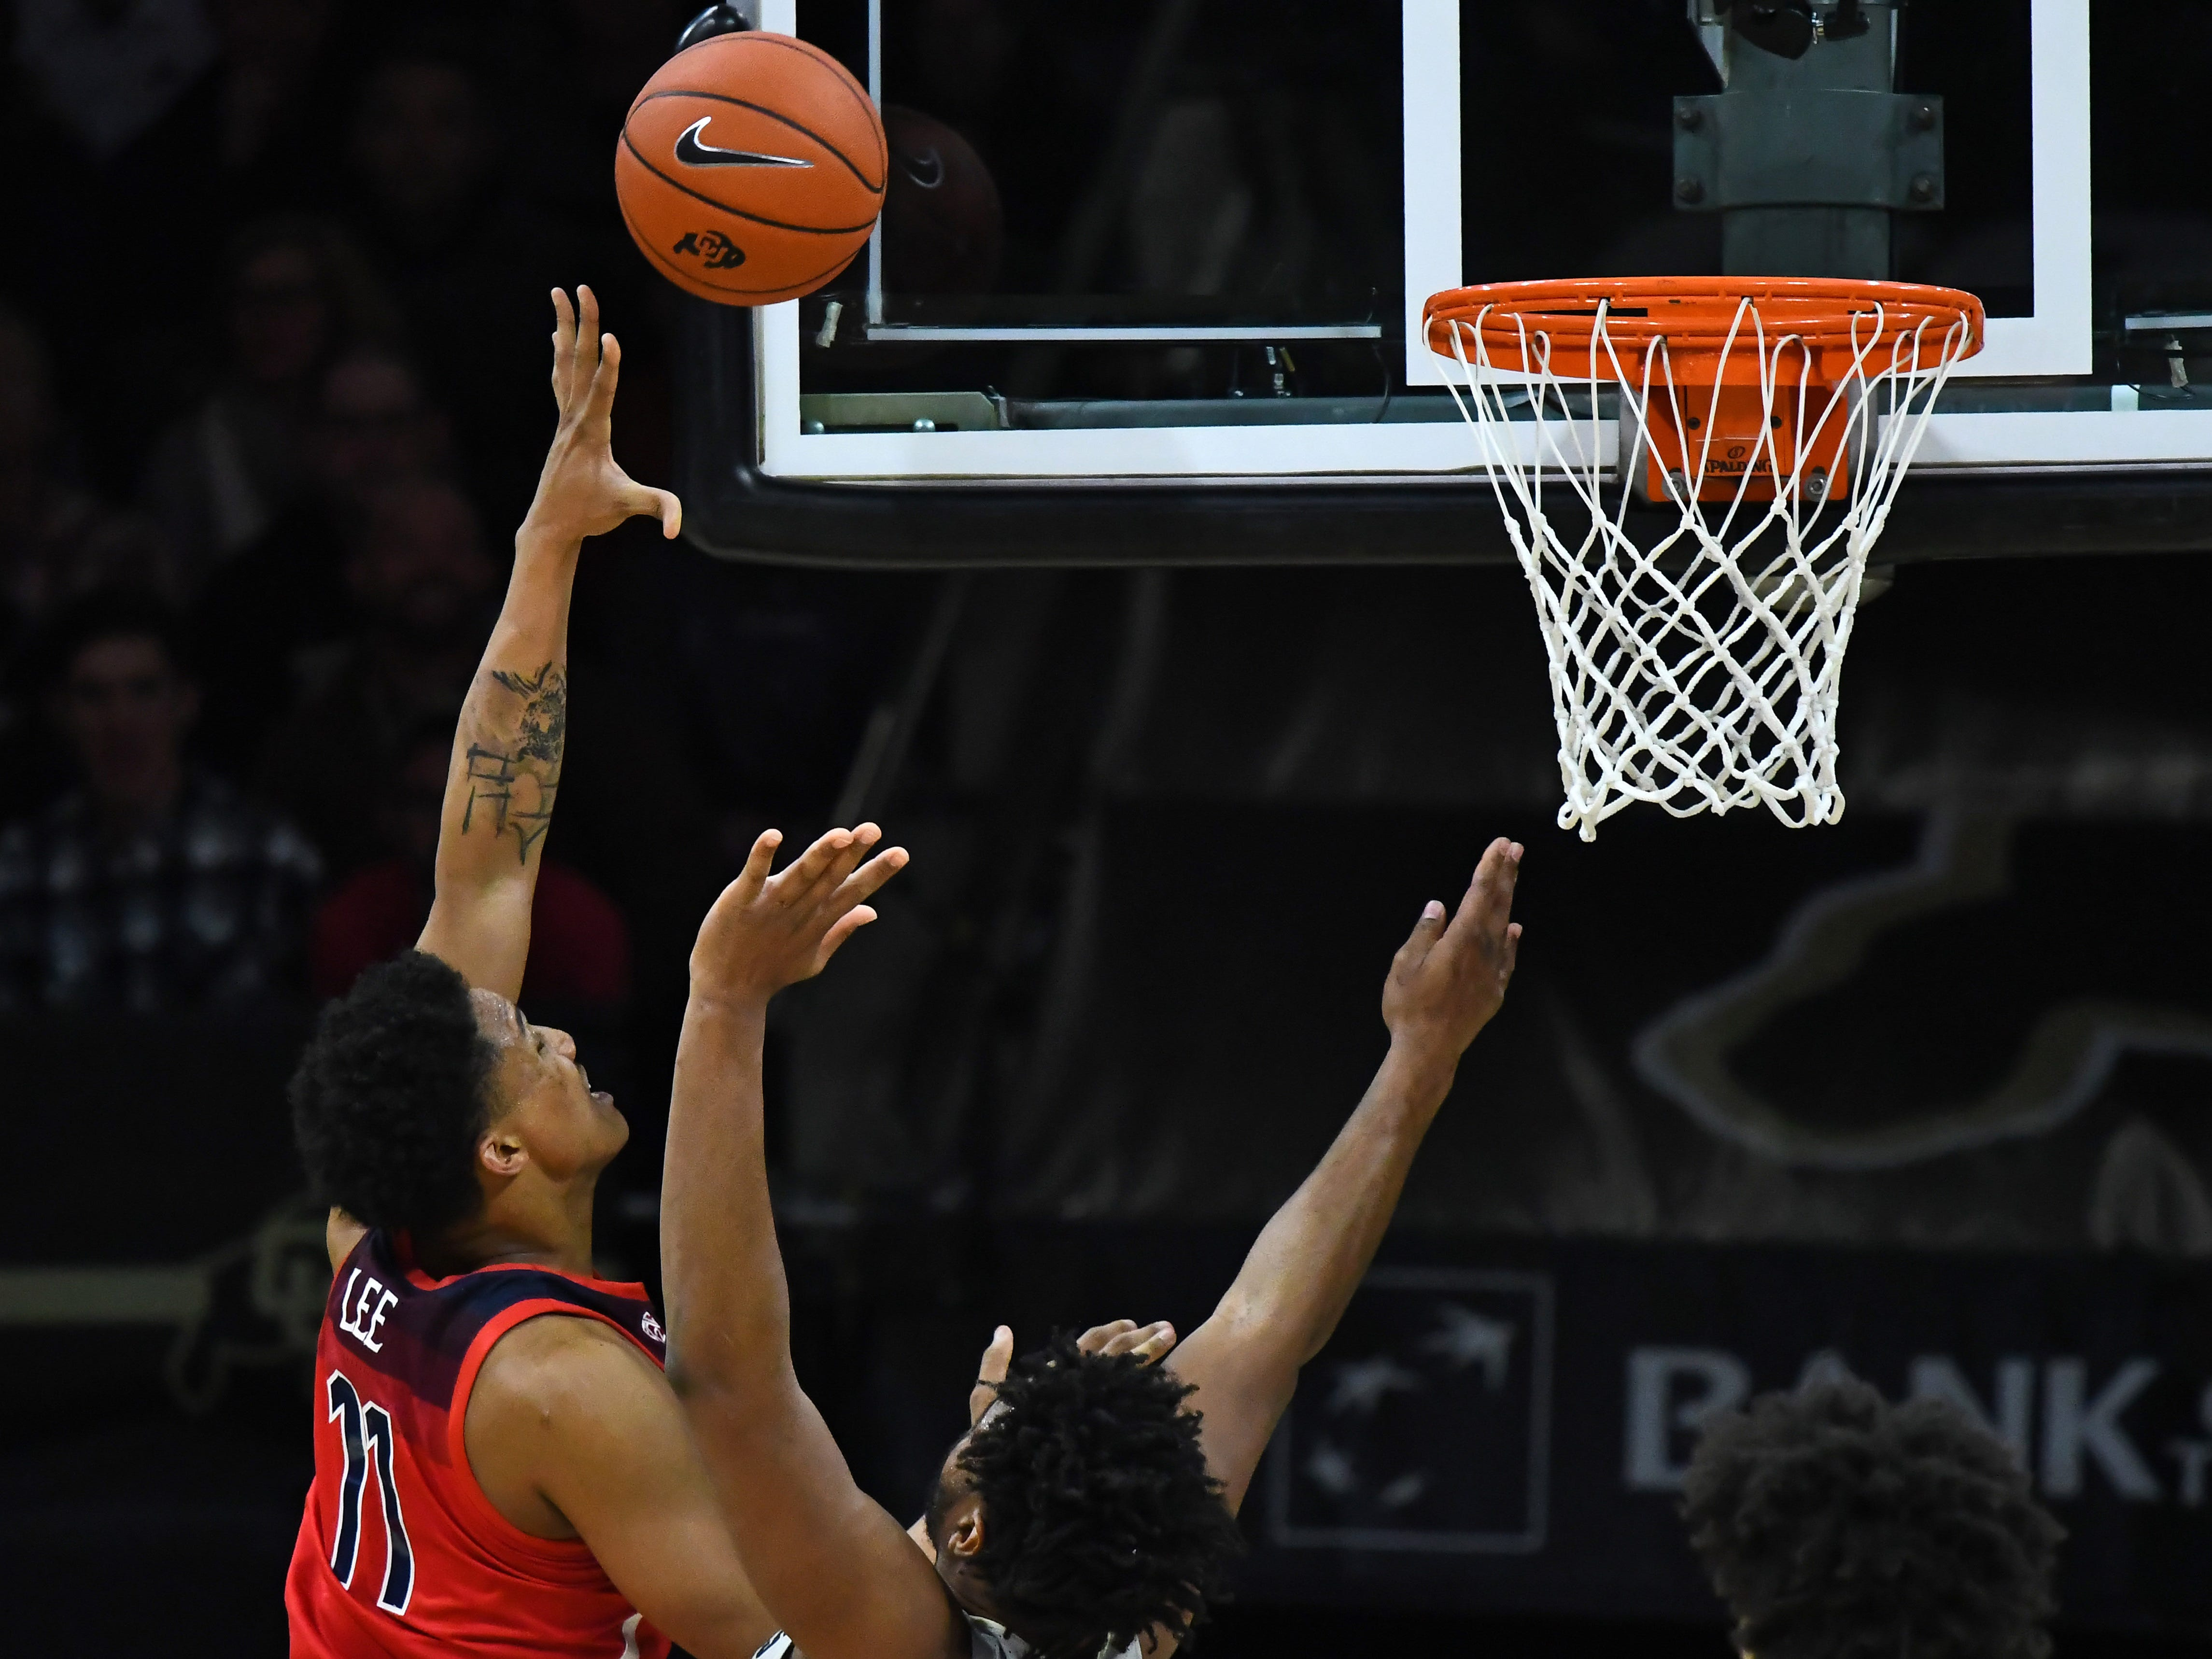 Feb 17, 2019; Boulder, CO, USA; Arizona Wildcats forward Ira Lee (11) shoots over Colorado Buffaloes forward Evan Battey (21) in the first half at the Coors Events Center. Mandatory Credit: Ron Chenoy-USA TODAY Sports